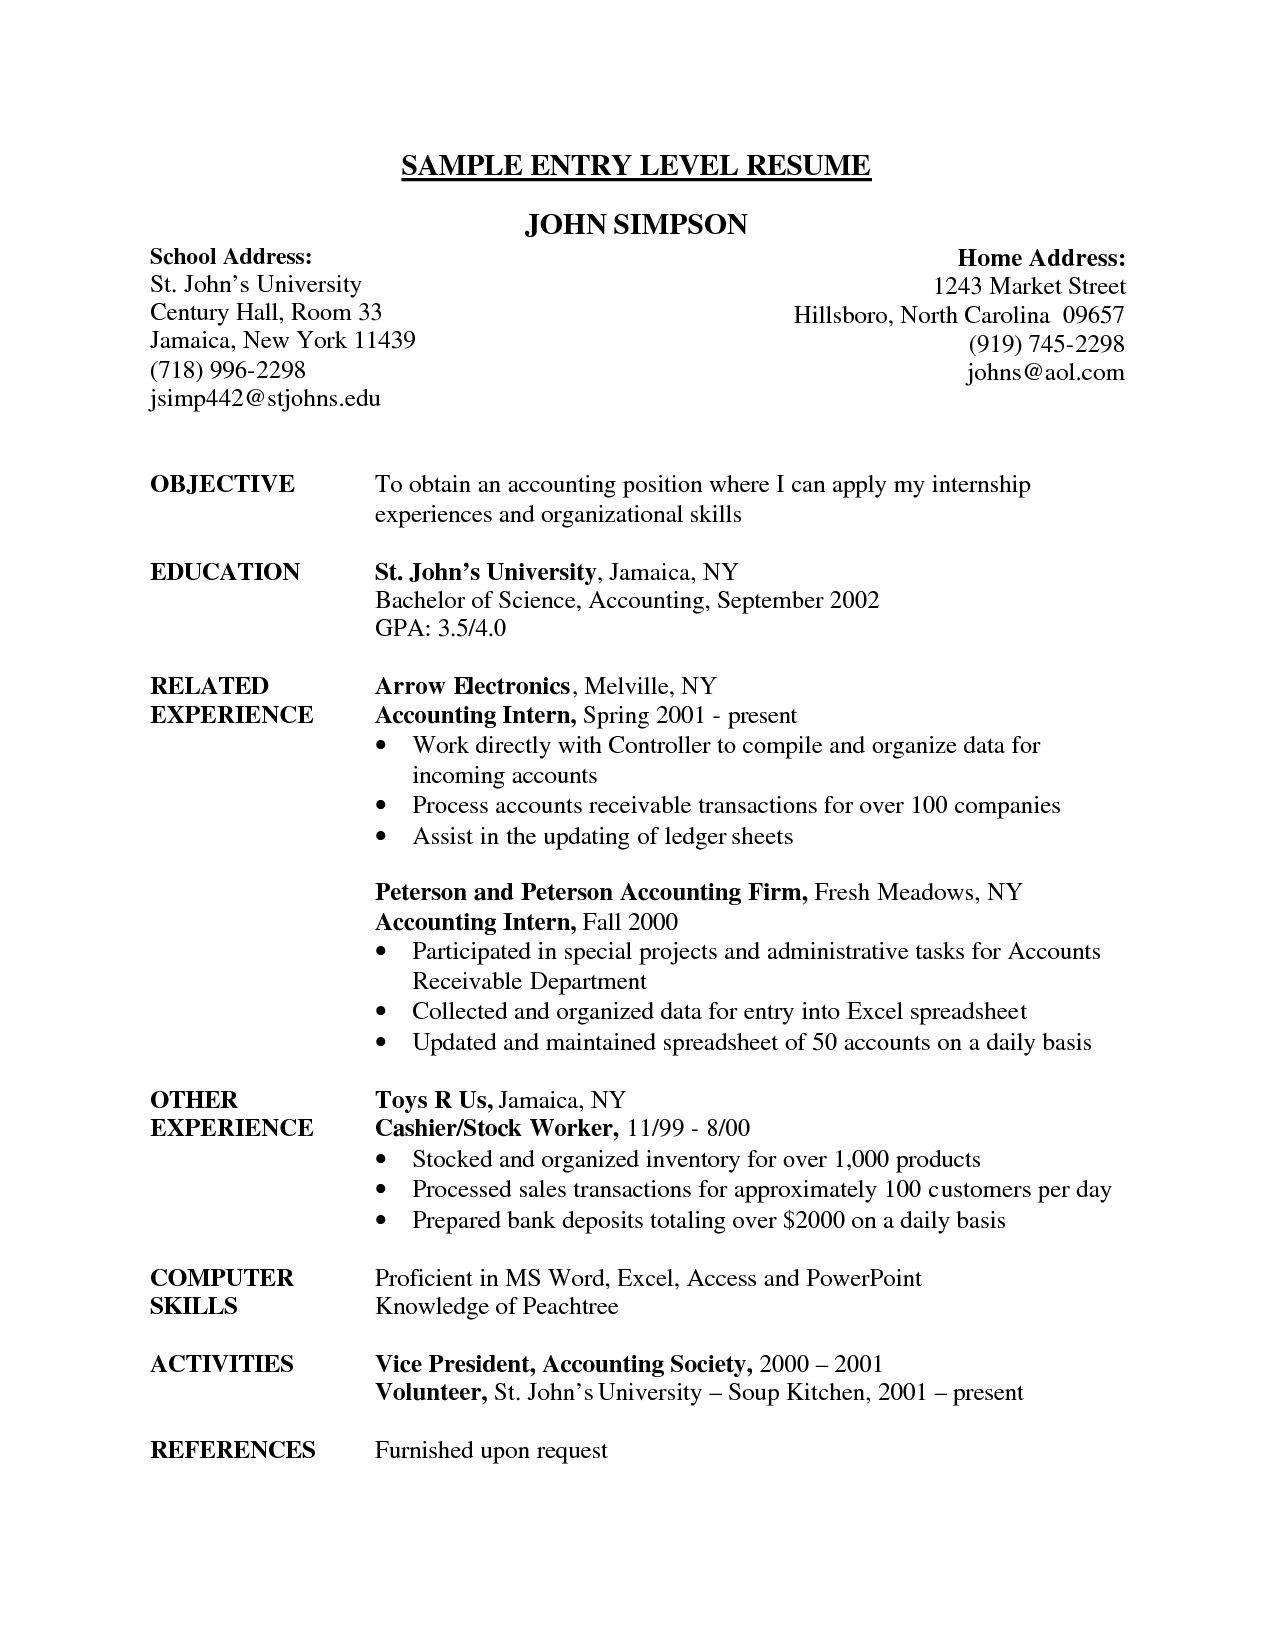 Accounting Internship Resume Objective Pleasing Resume Examples Entry Level  Resume Examples  Pinterest  Resume .